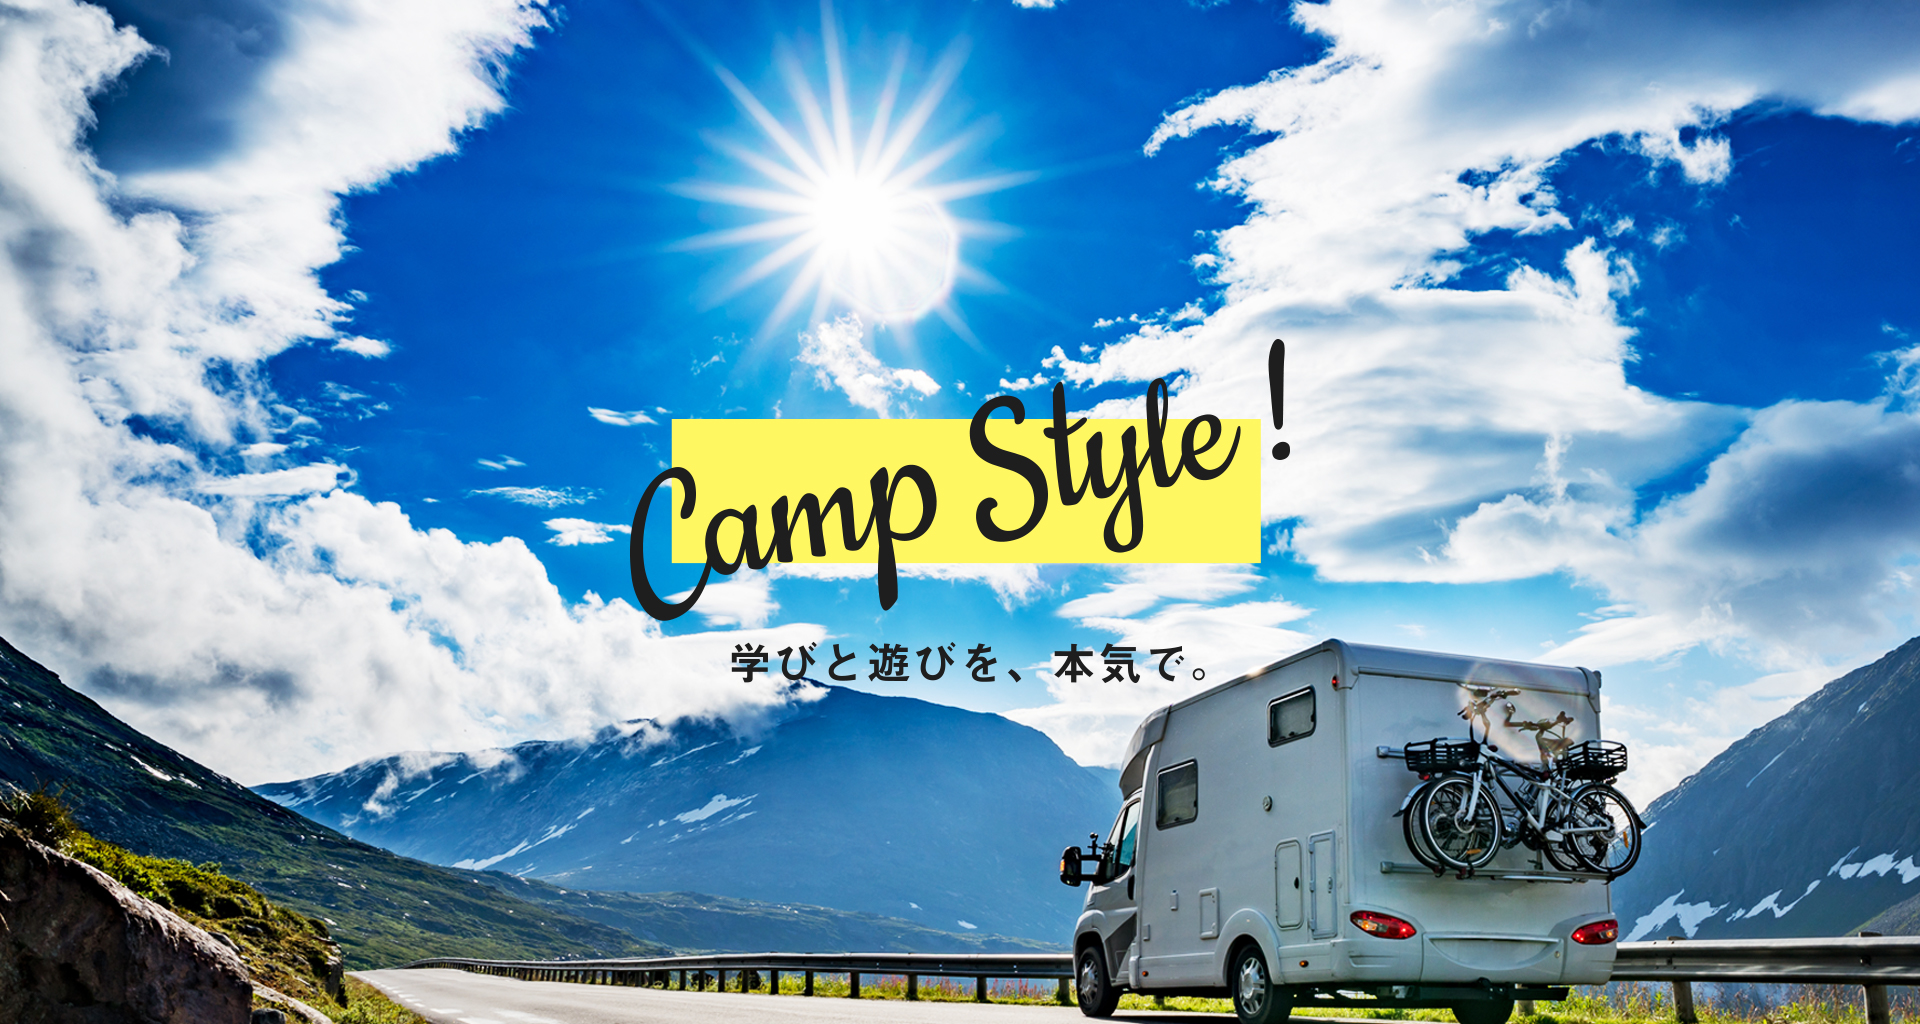 Camp Style